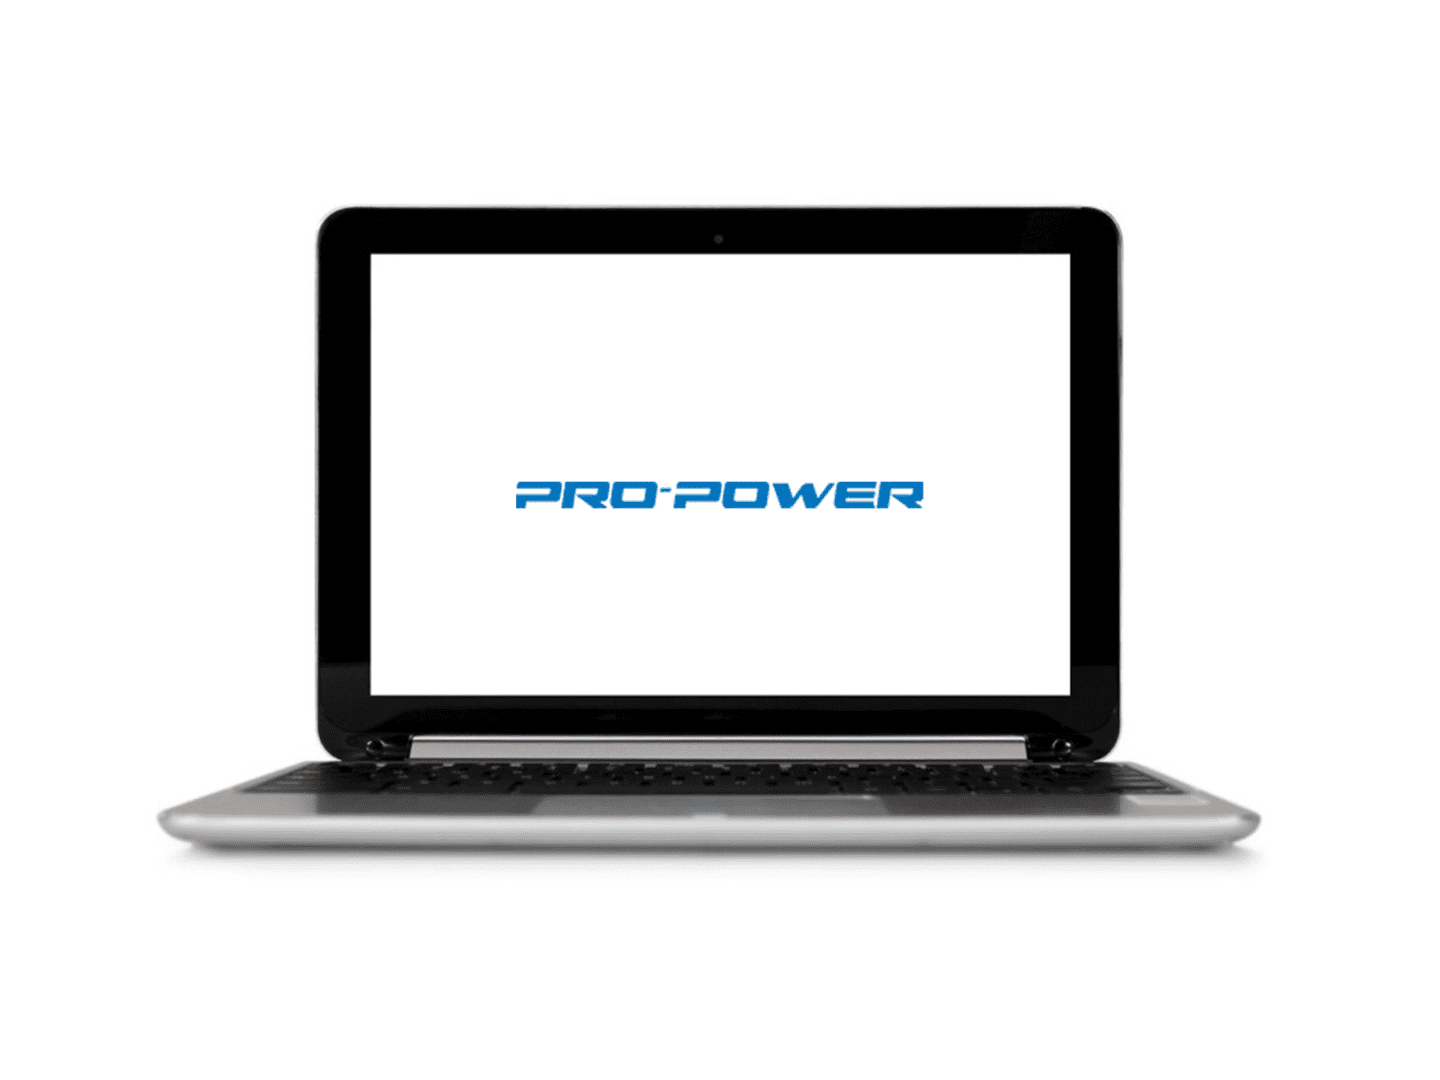 Pro-Power software system